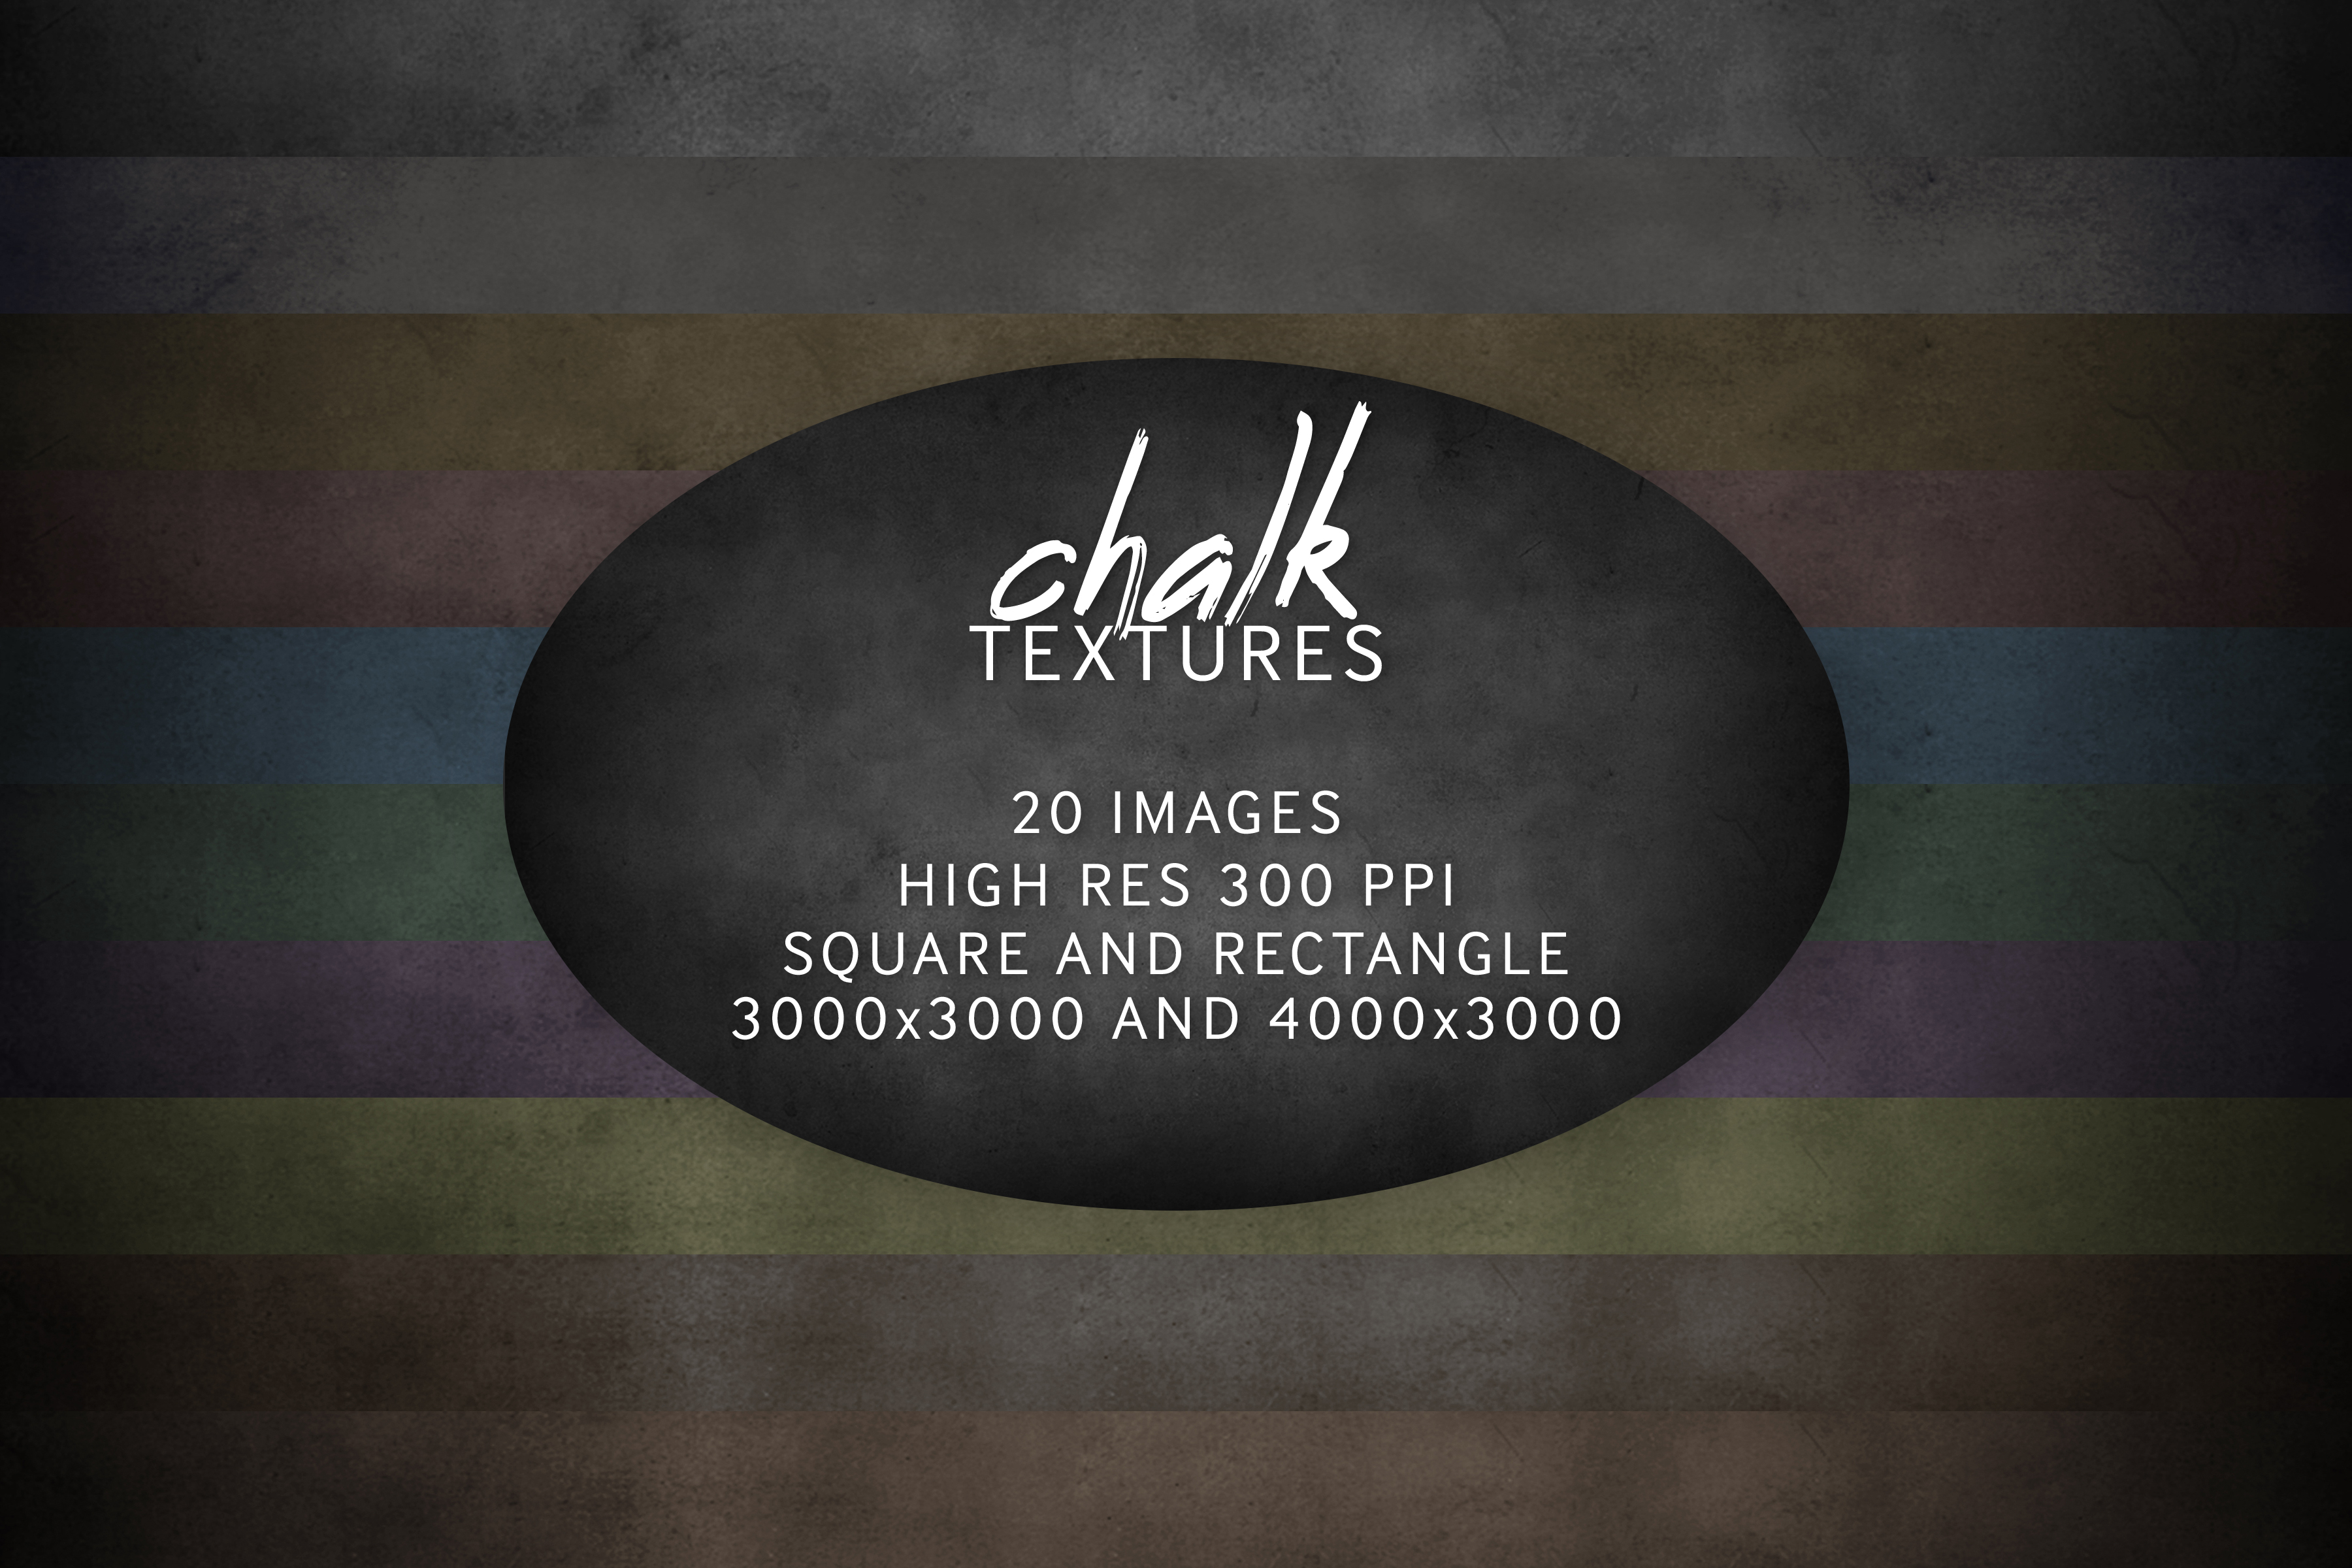 Download Free Chalkboard Texture Pack Graphic By Oa Design Creative Fabrica for Cricut Explore, Silhouette and other cutting machines.